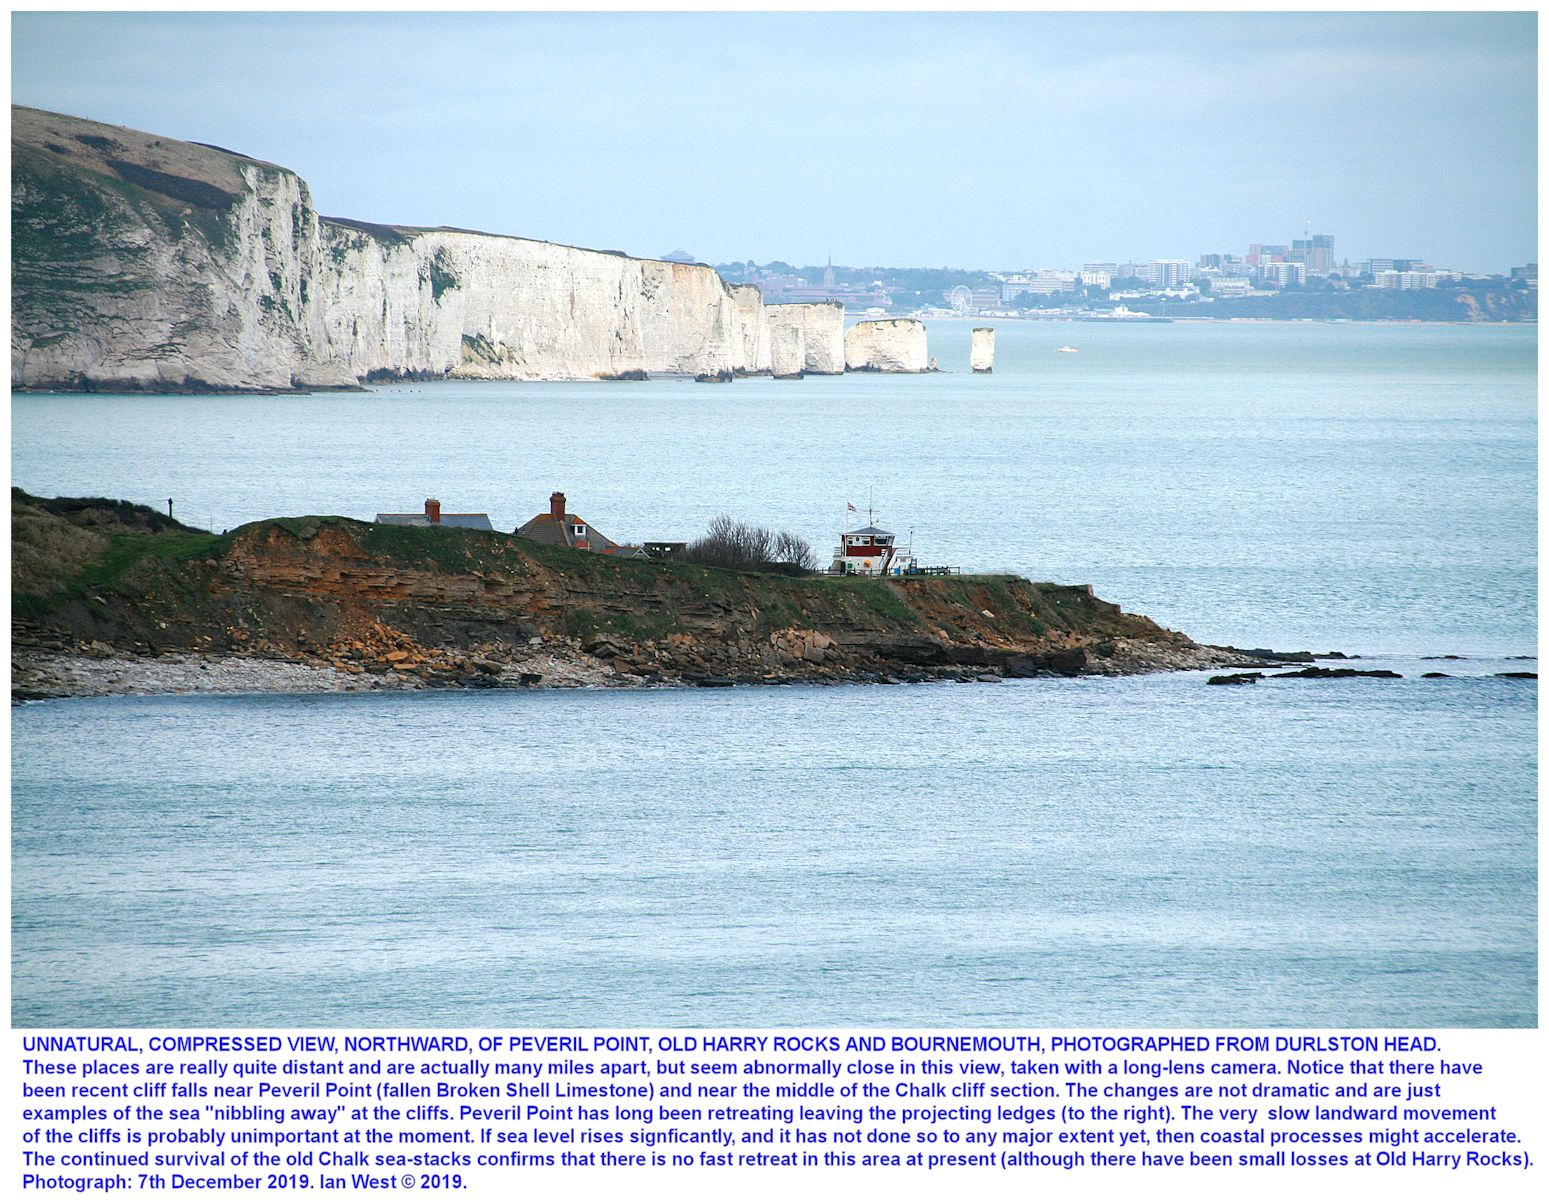 Distant view northward, photograph with long magnifying lens, from Durlston Head, Swanage, towards Peveril Point, Old Harry Rocks and Bournemouth beyond, 7th December 2019, Ian West